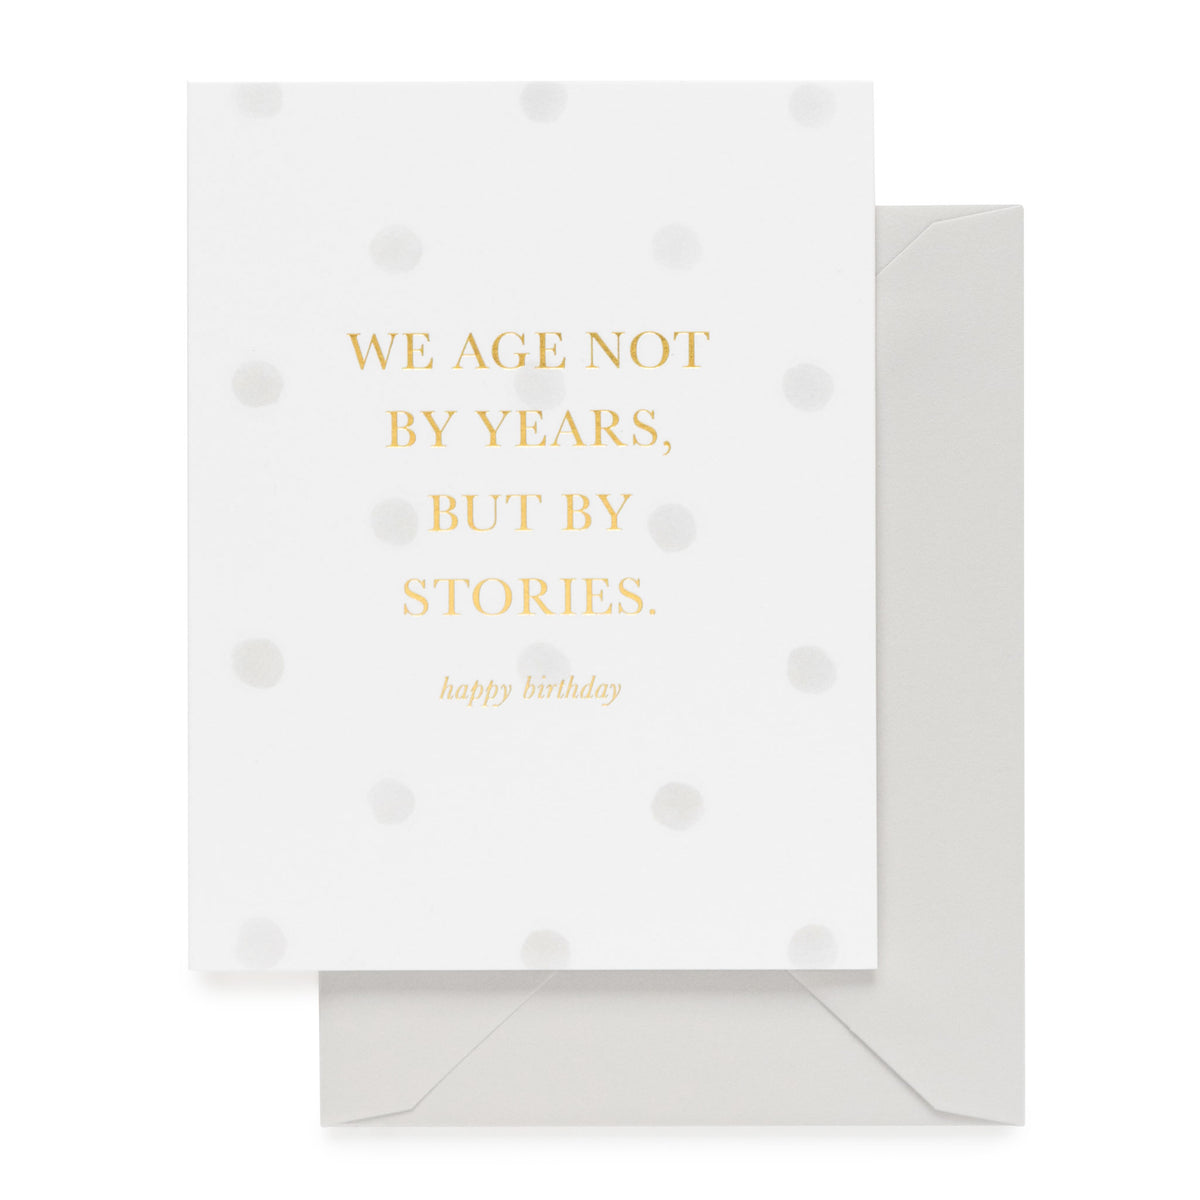 Not By Years But By Stories